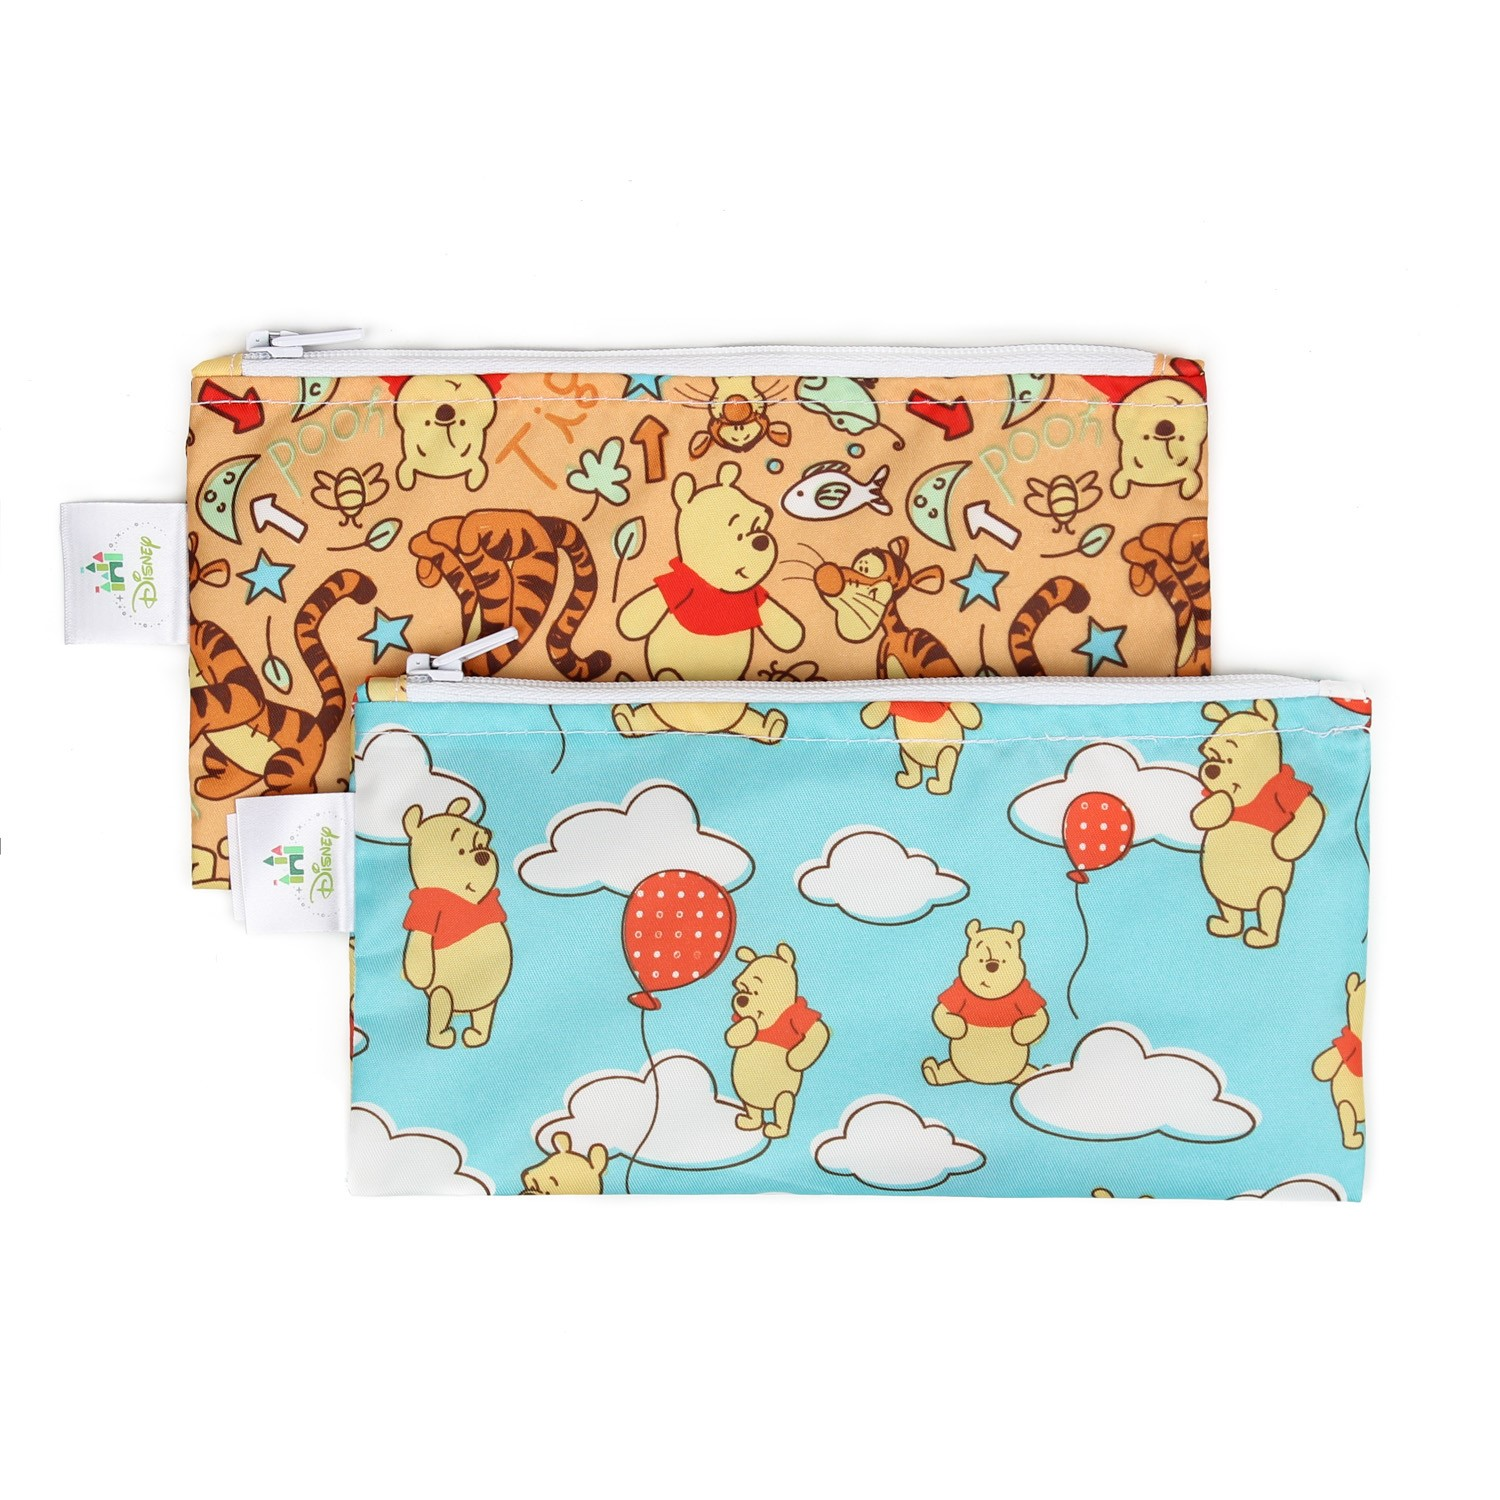 Bumkins Reusable Snack Bag, Small, Pooh (Woods/Balloon), 2 Pack